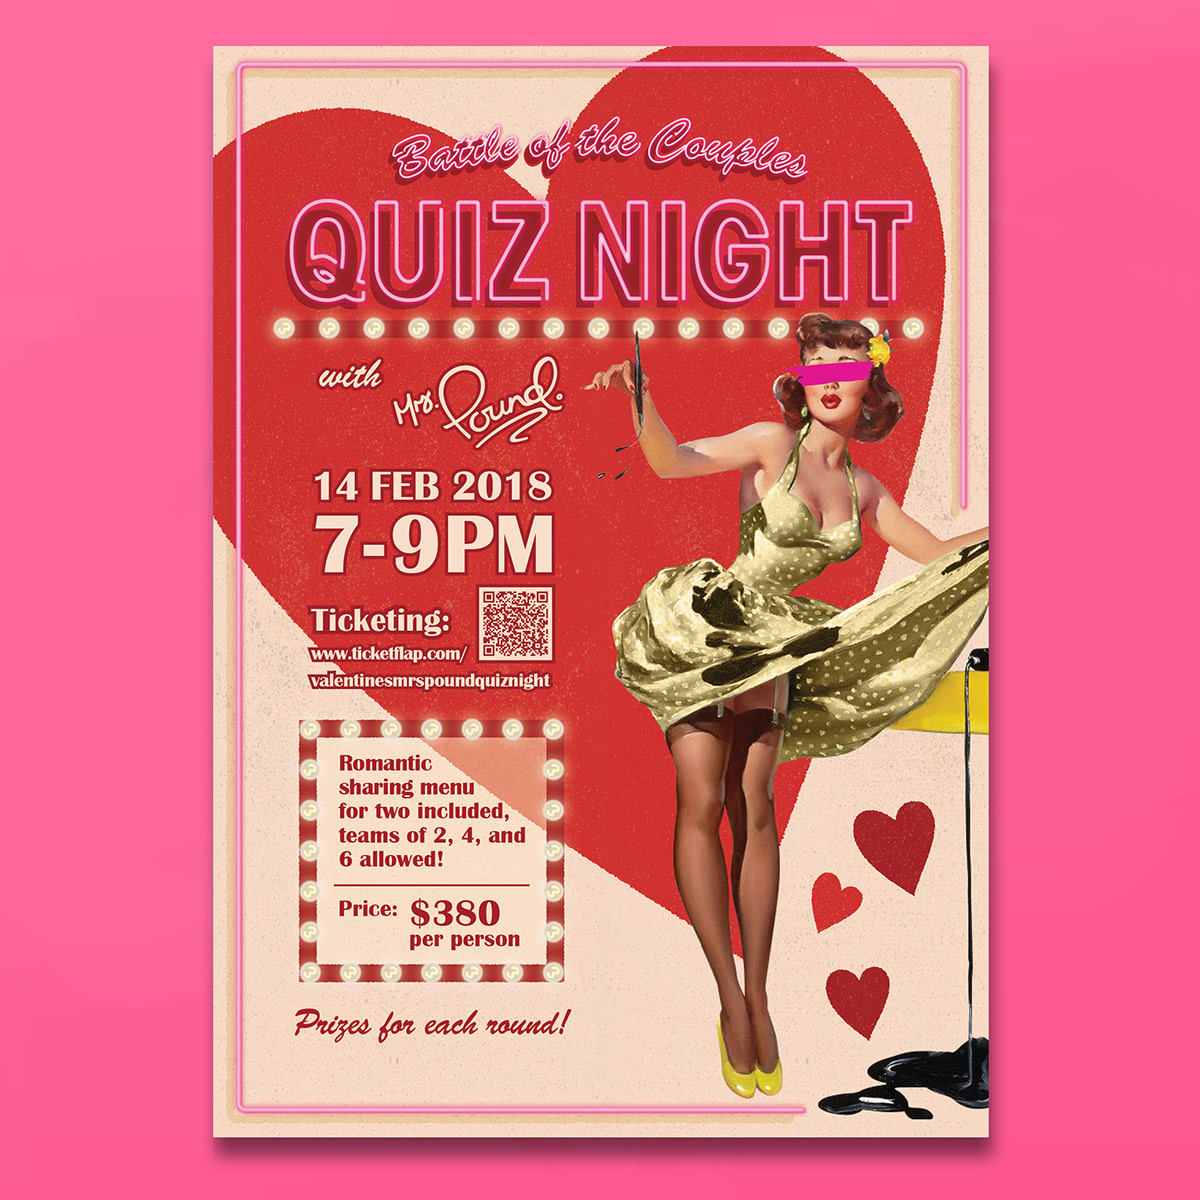 MrsPound-QuizNight-01-web